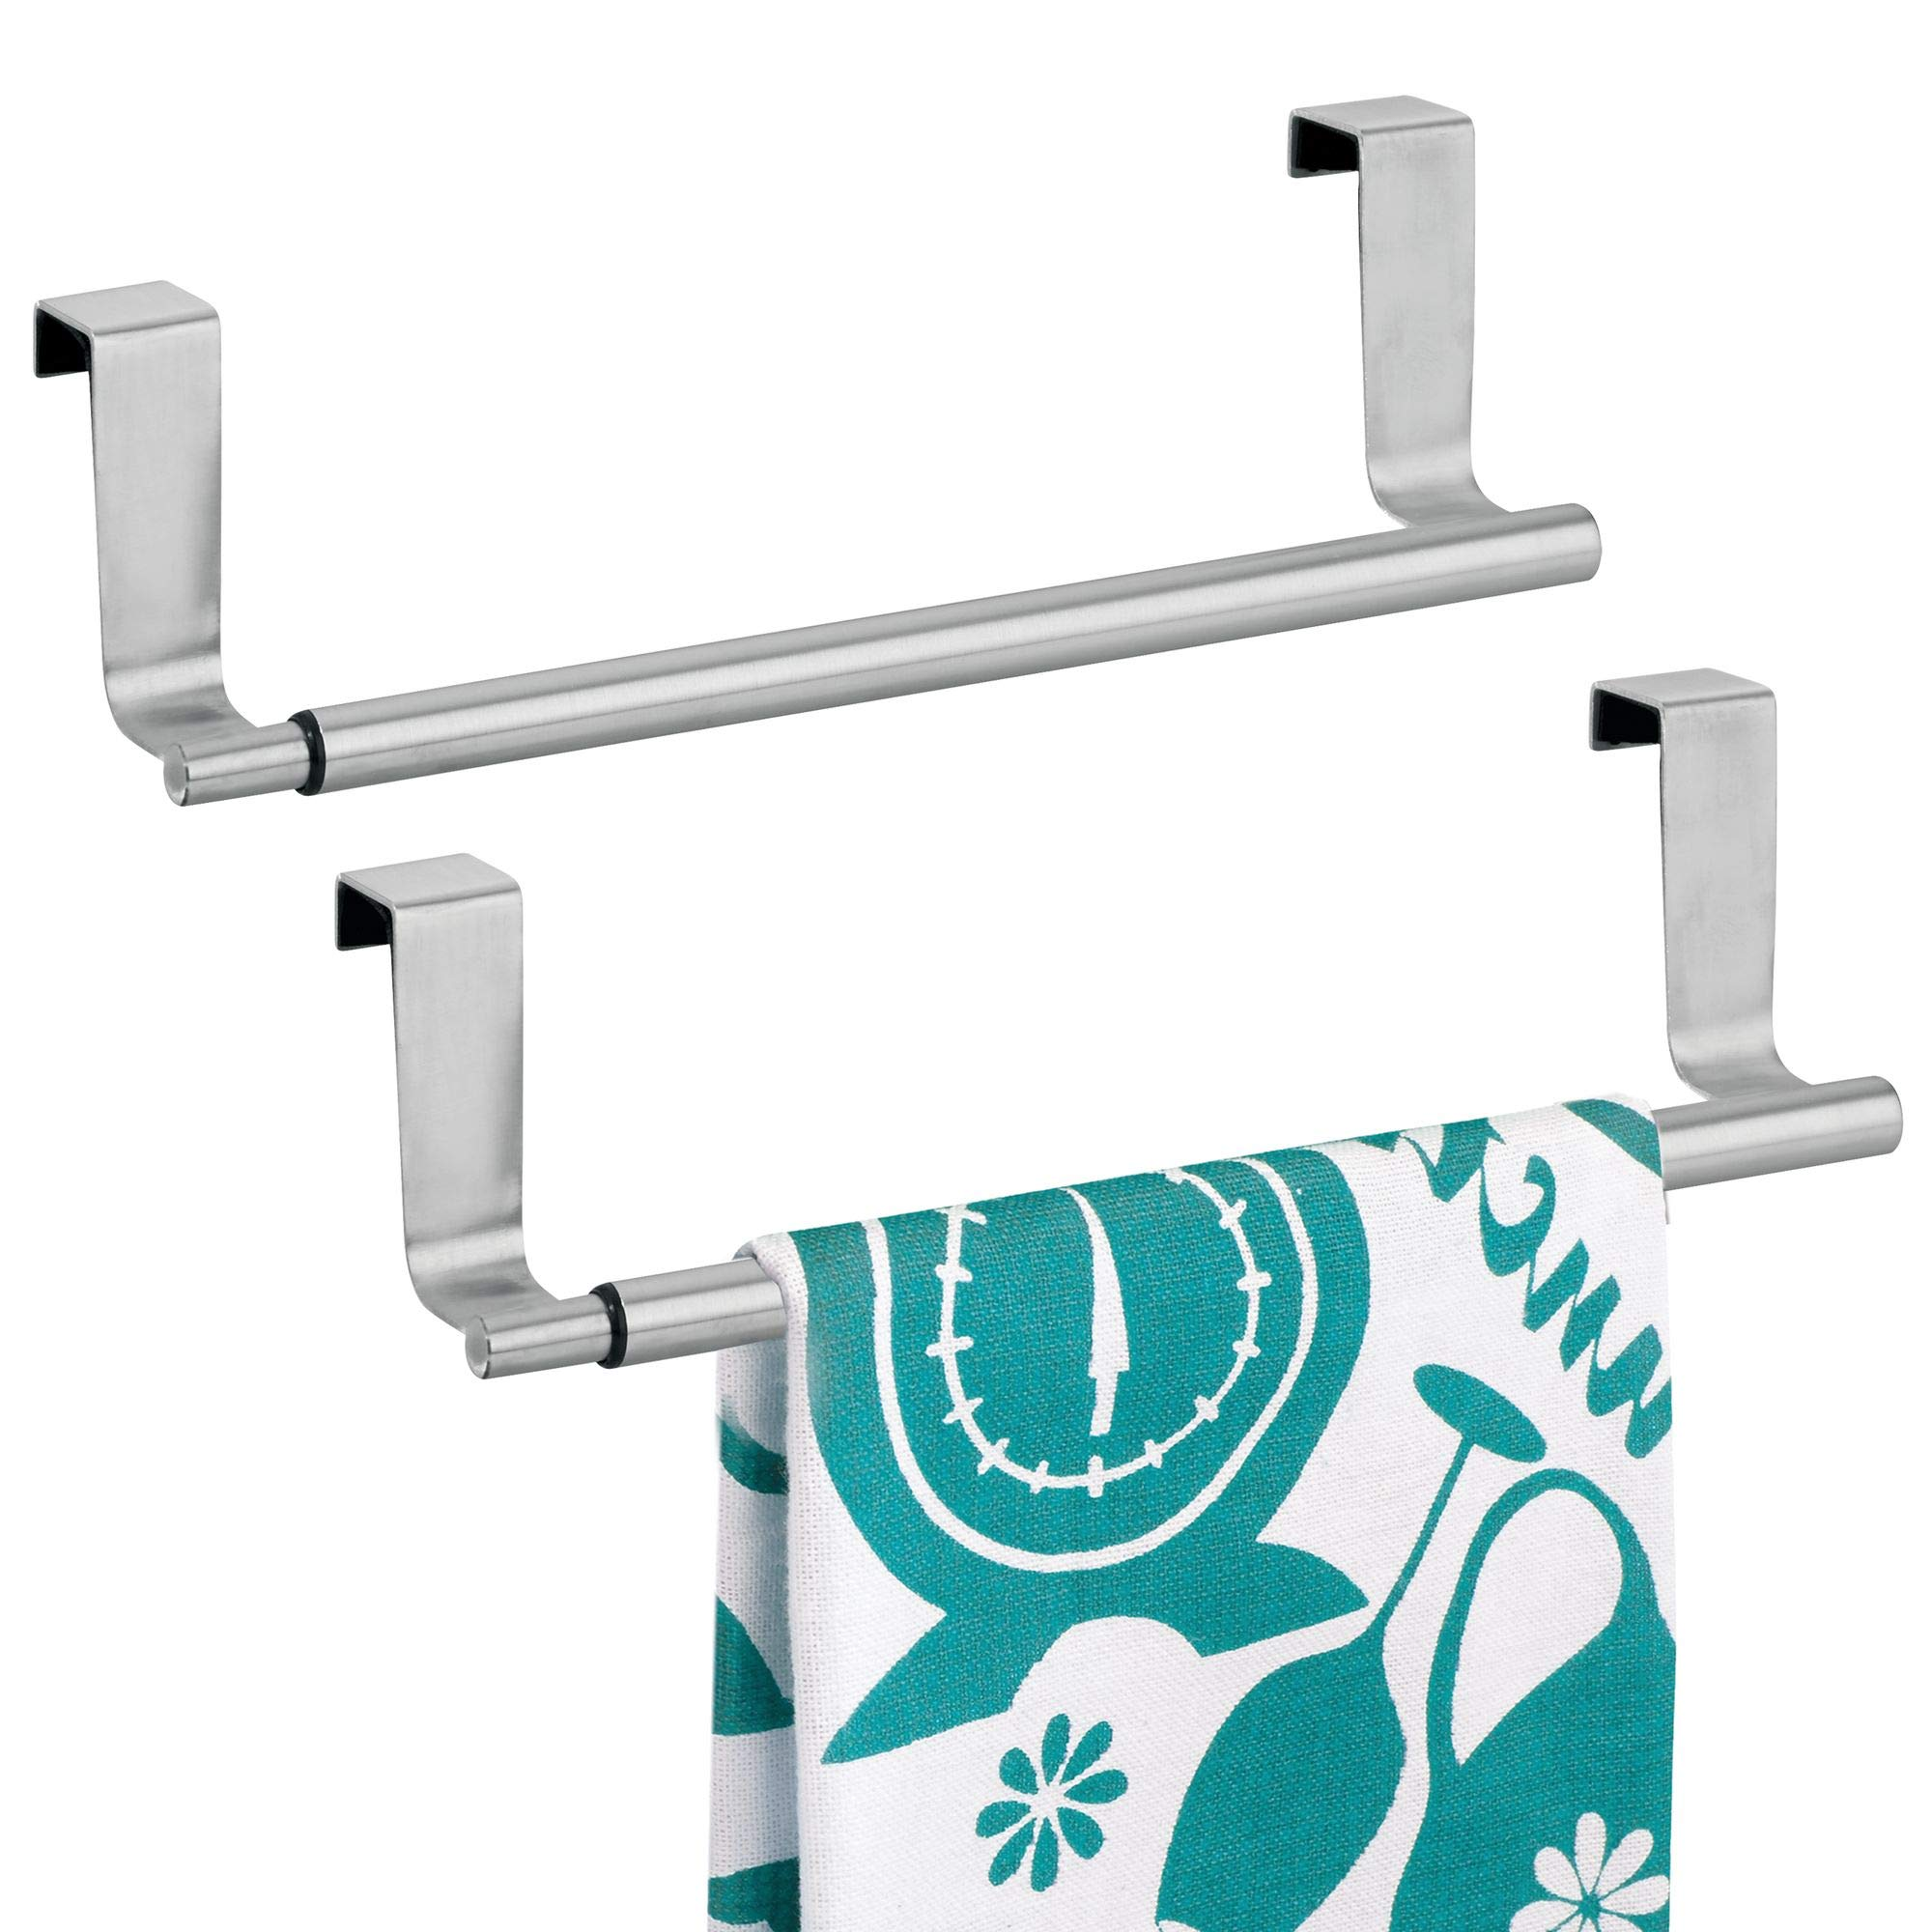 mDesign Decorative Kitchen Over-The-Cabinet Expandable Adjustable Towel Bars Holders organizers for Hanging Drying Hand, Dish, Tea Towels - set of 2, Brushed Stainless Steel